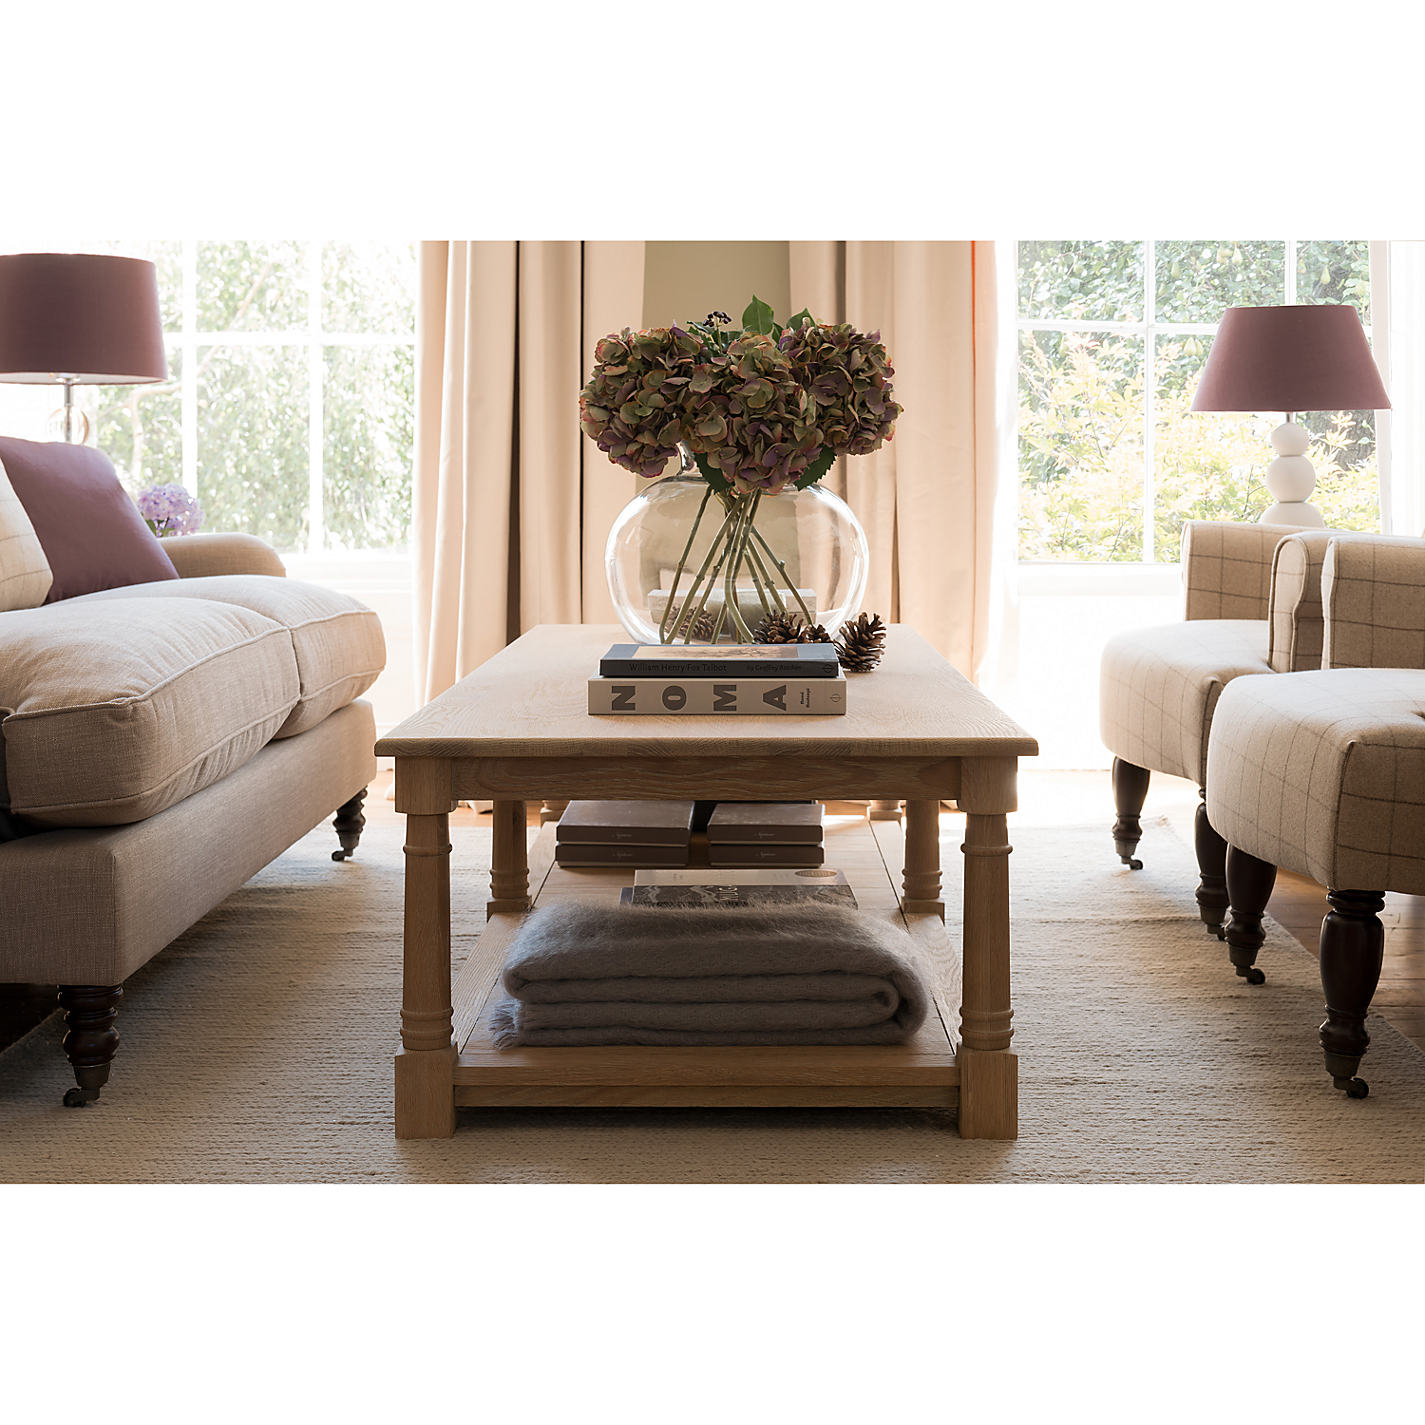 Buy Neptune Edinburgh Living & Dining Furniture Range